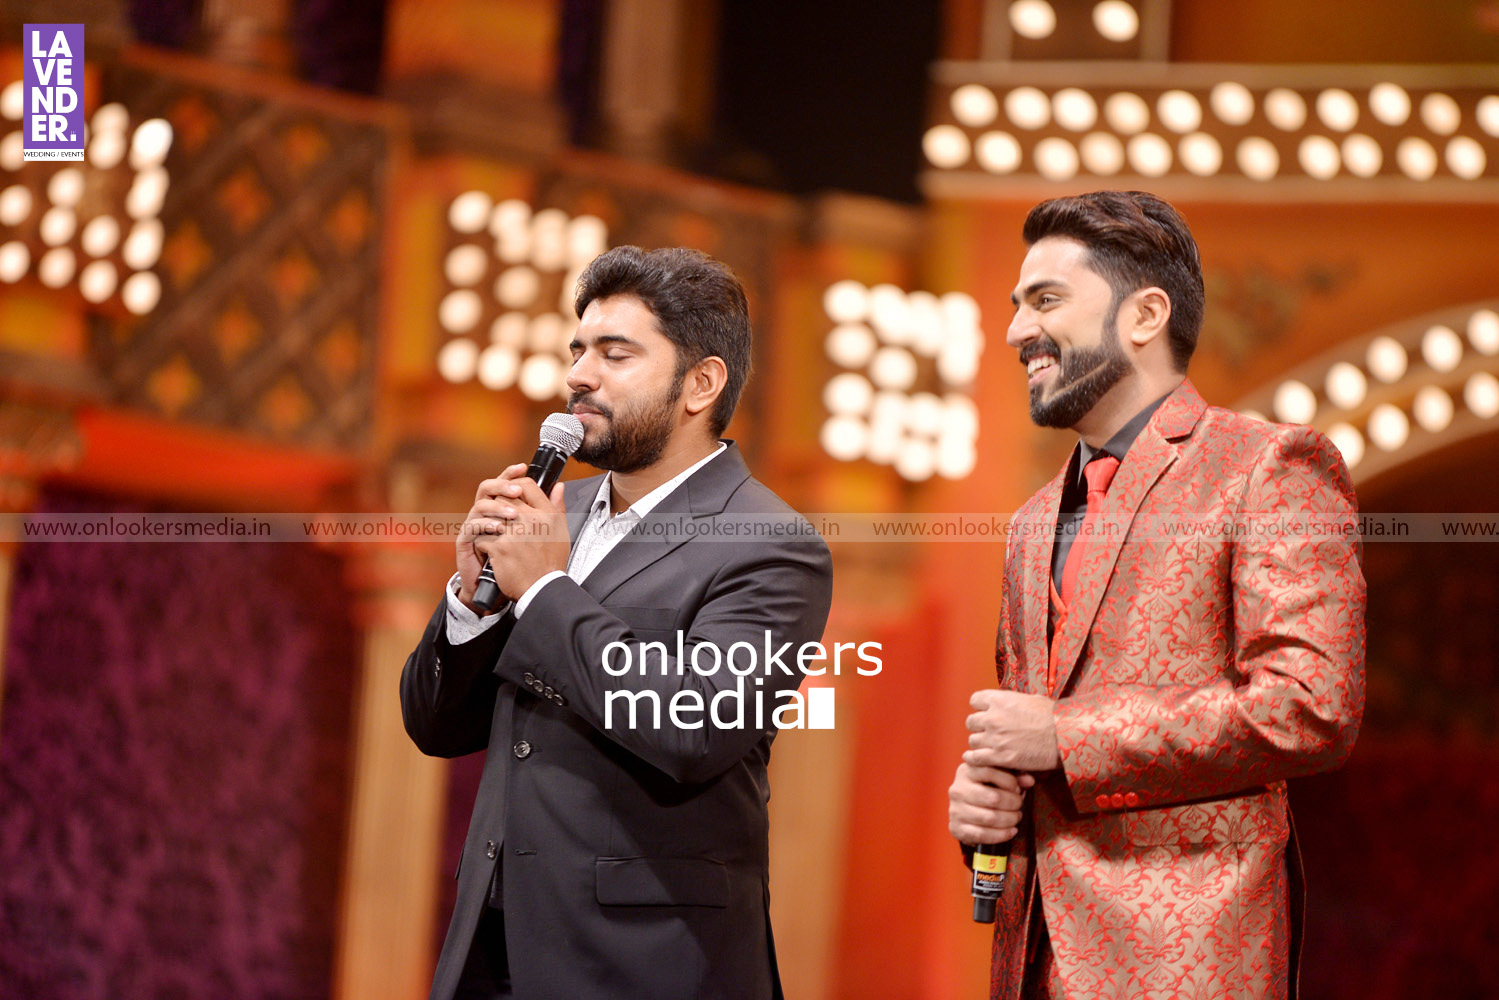 http://onlookersmedia.in/wp-content/uploads/2016/02/Nivin-Pauly-at-Asianet-Film-Award-2016-24.jpg